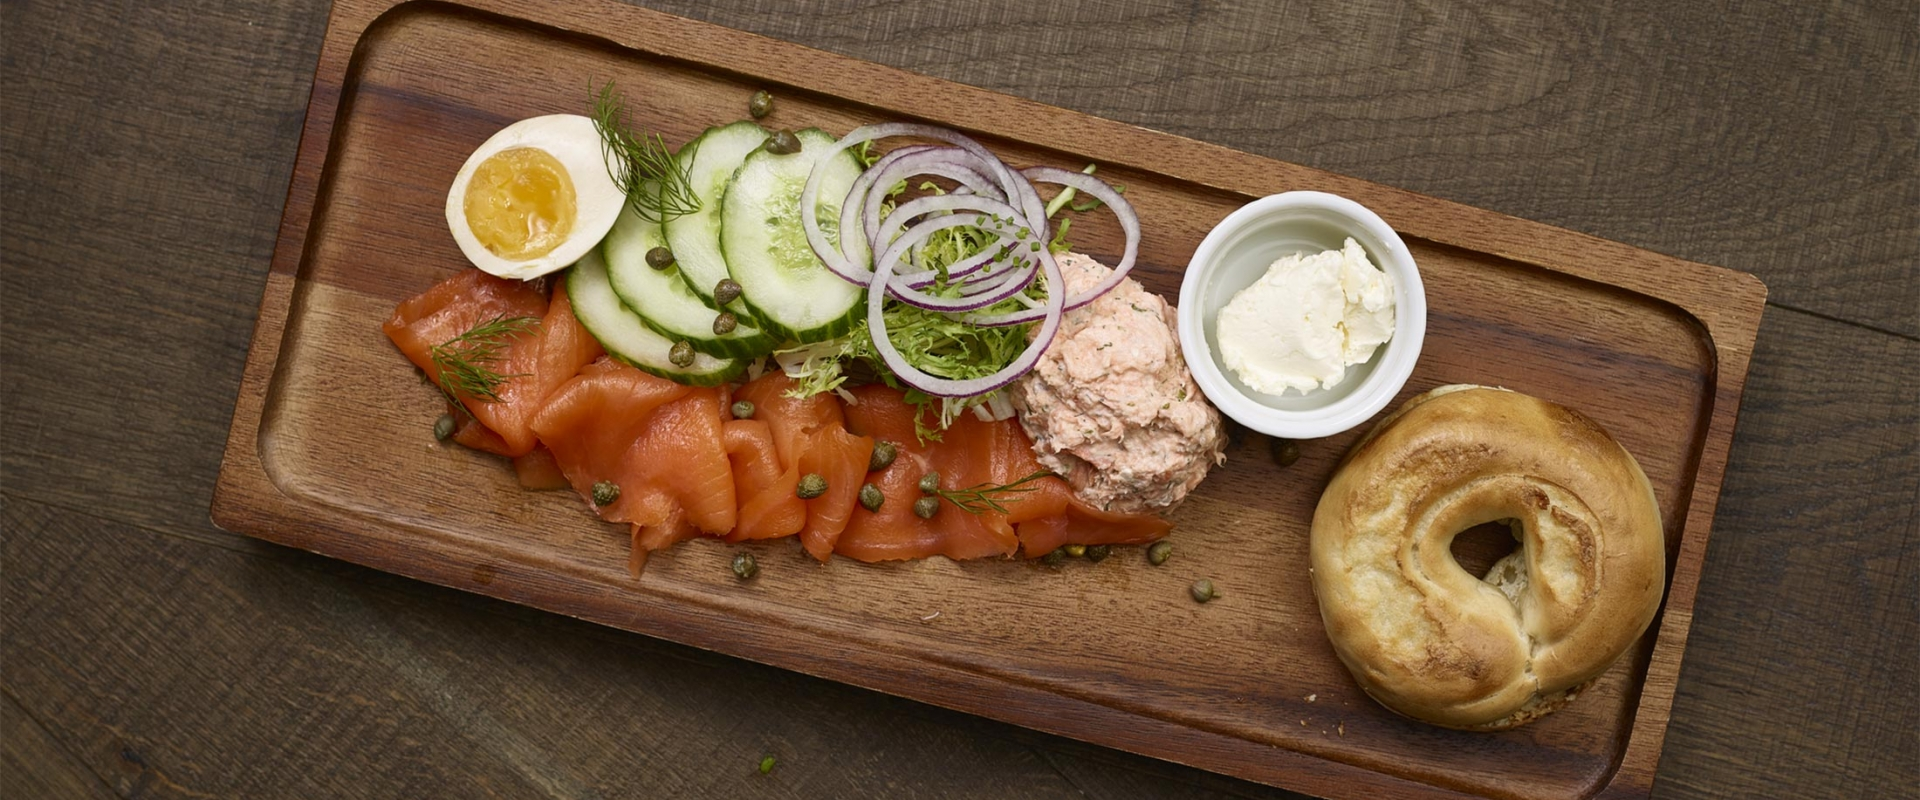 Smoked salmon board from Honey Salt